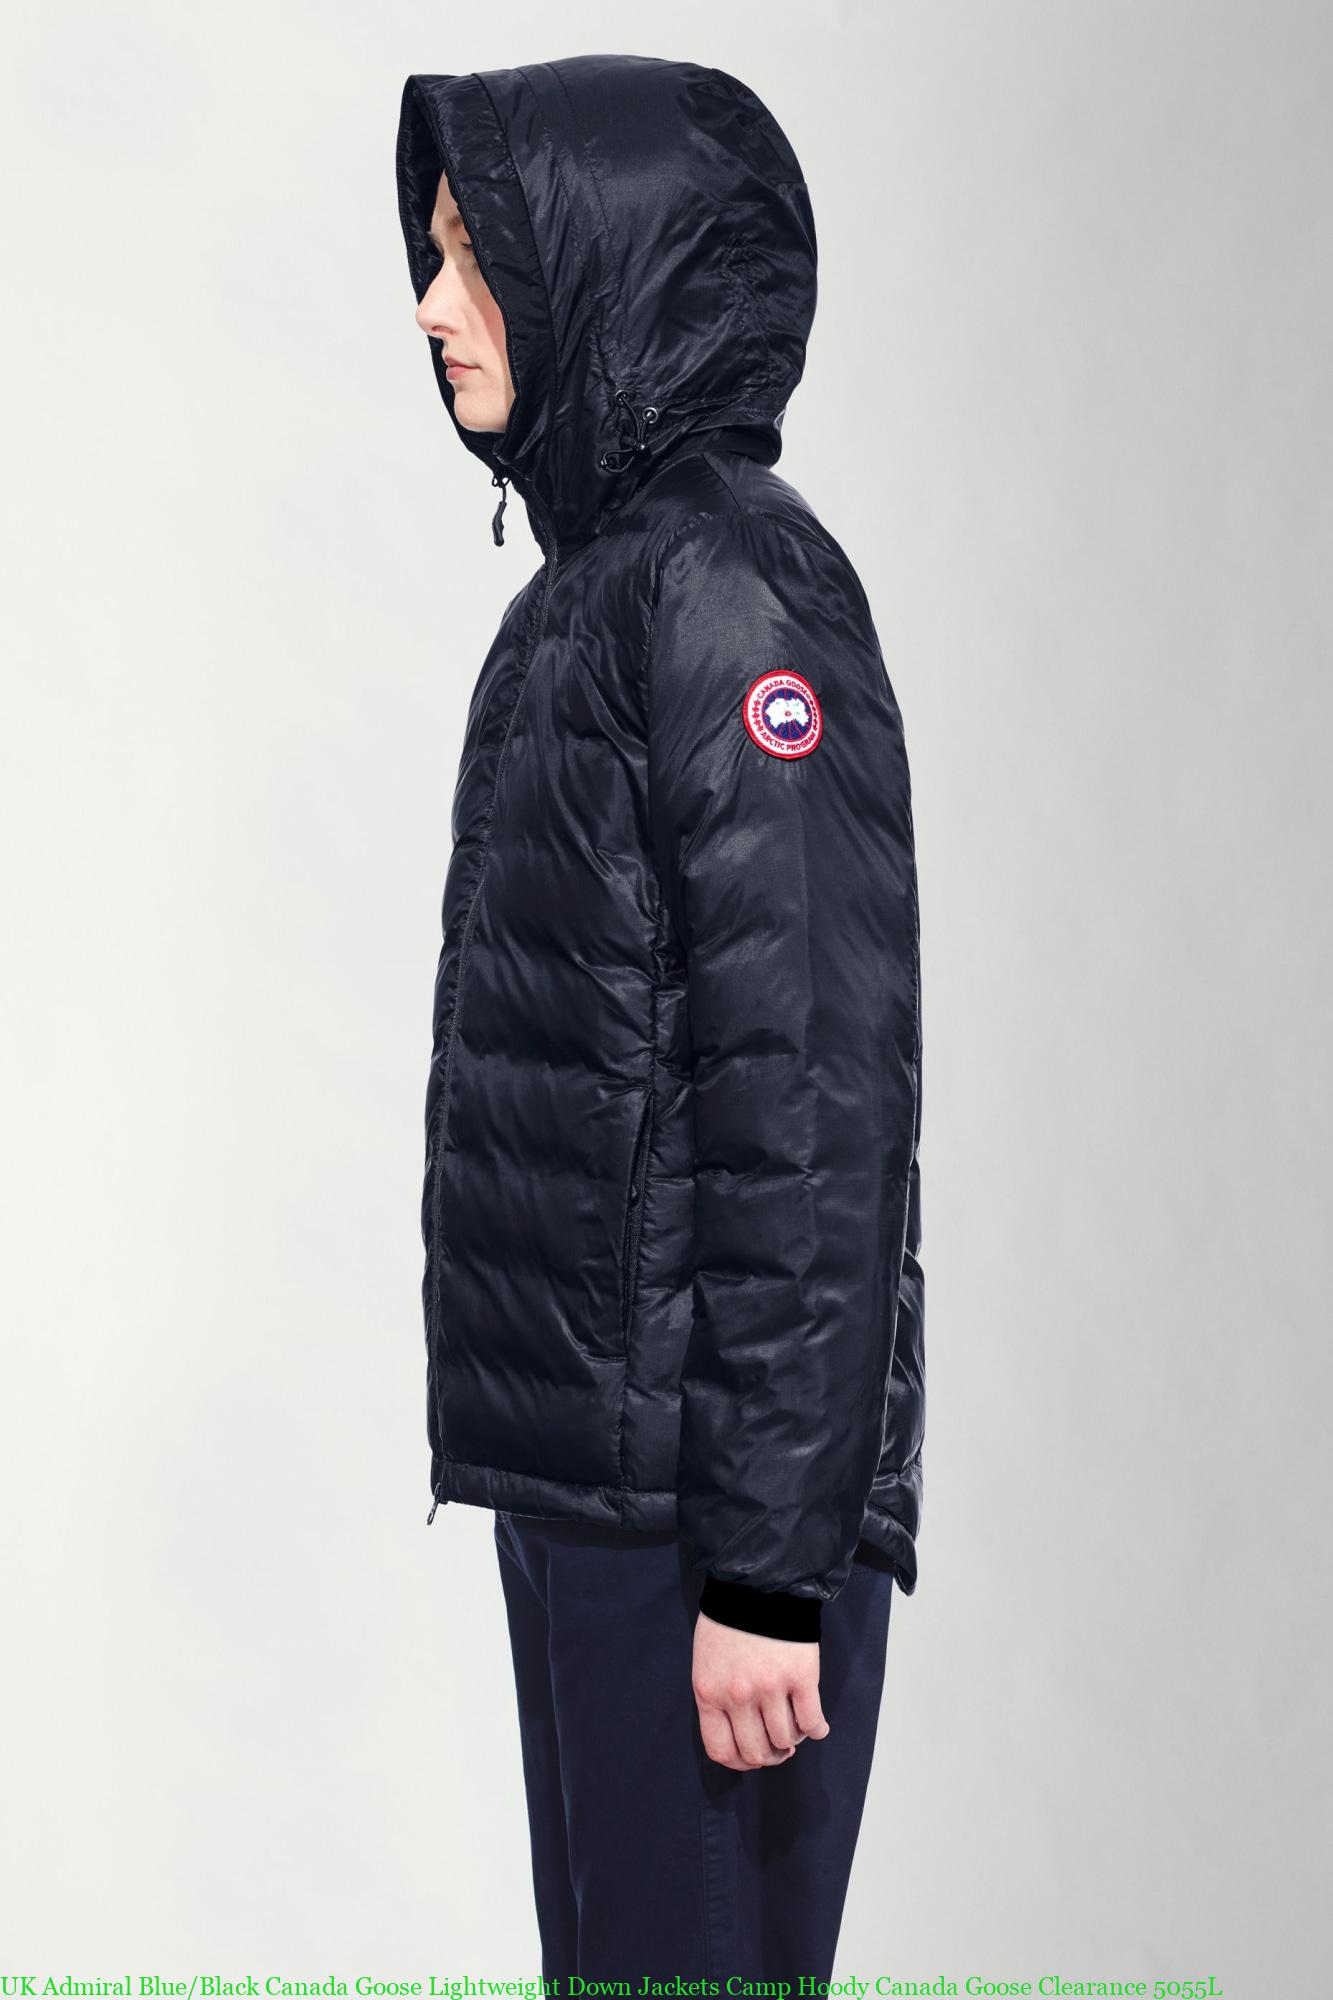 8ac01a2e88d UK Admiral Blue/Black Canada Goose Lightweight Down Jackets Camp Hoody  Canada Goose Clearance 5055L